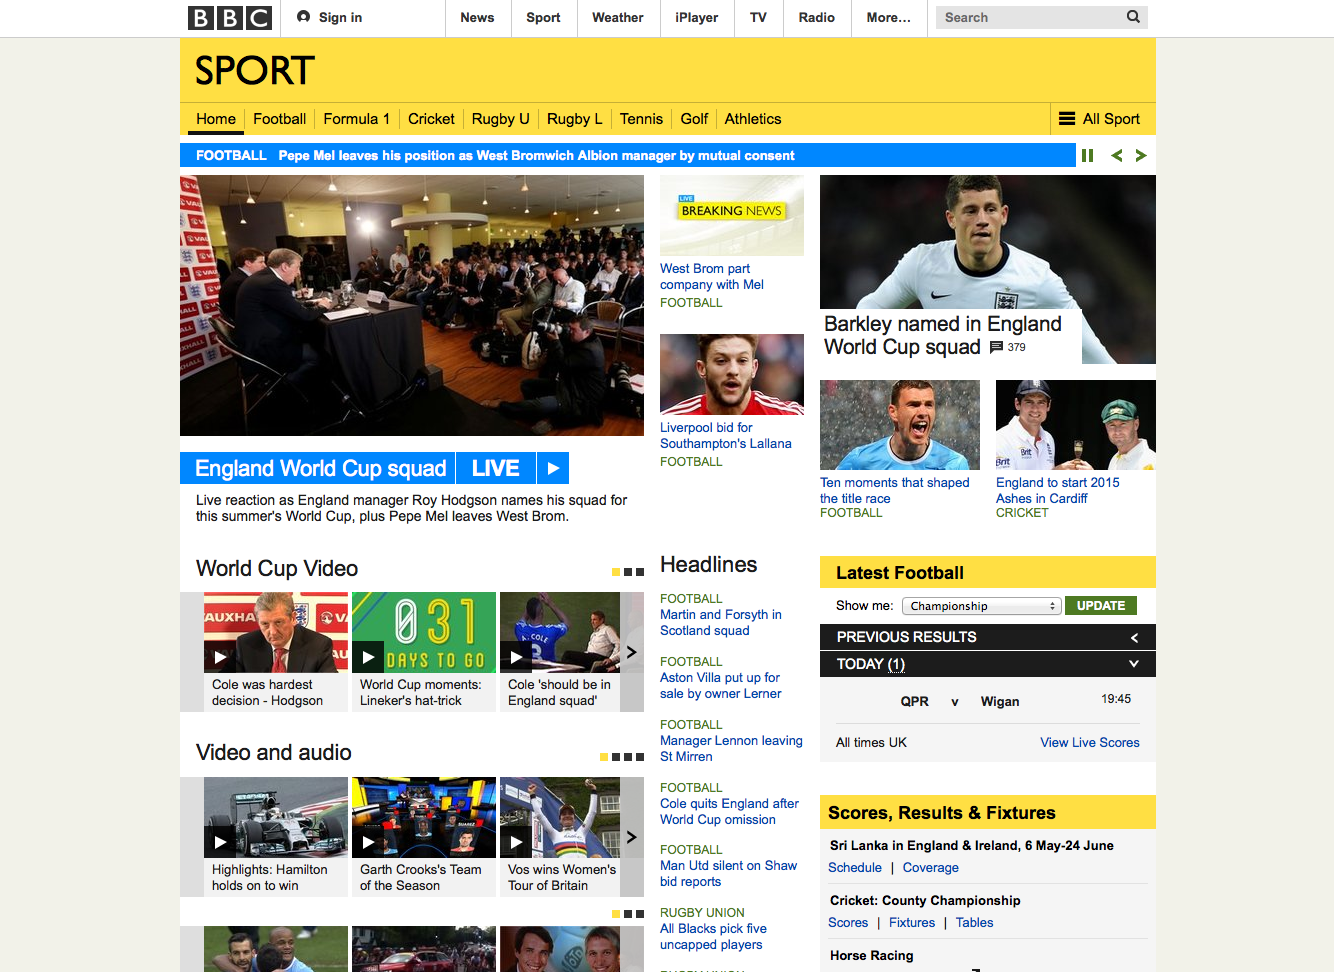 BBC Sport Re-Design